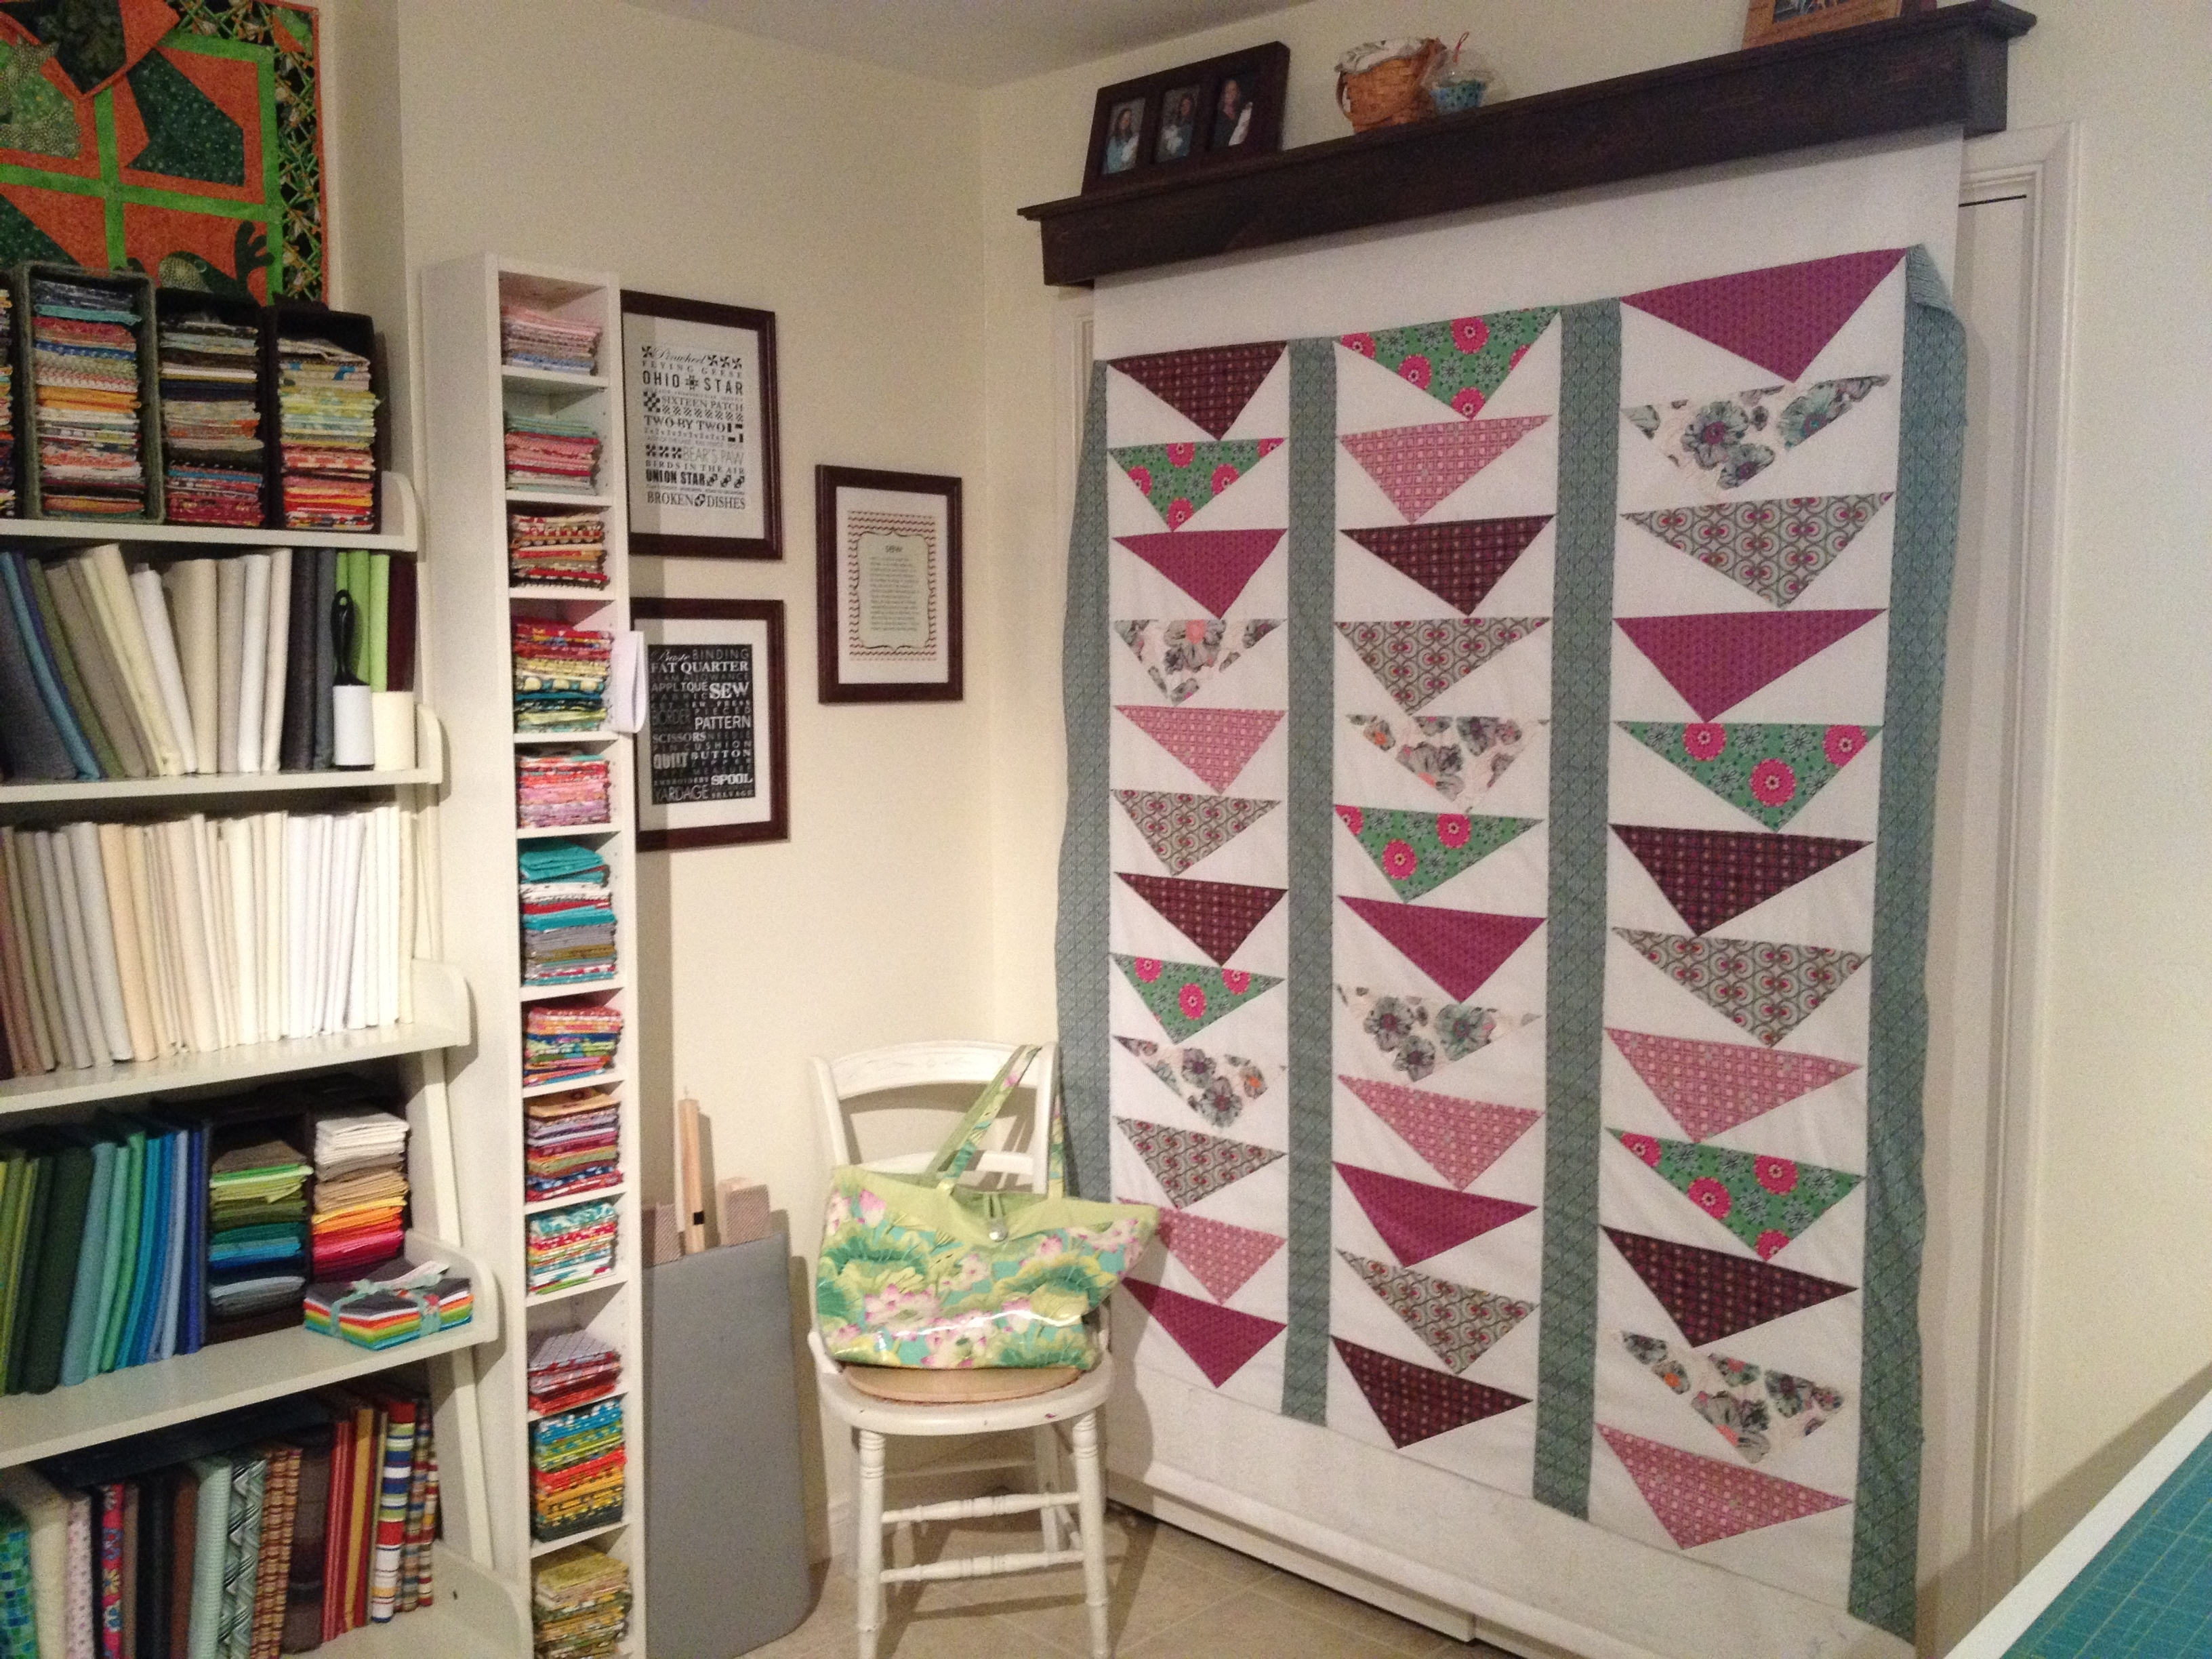 Sewing Room Of The Month – Art Gallery Fabrics – The Creative Blog With Regard To Newest Ikea Fabric Wall Art (View 10 of 15)